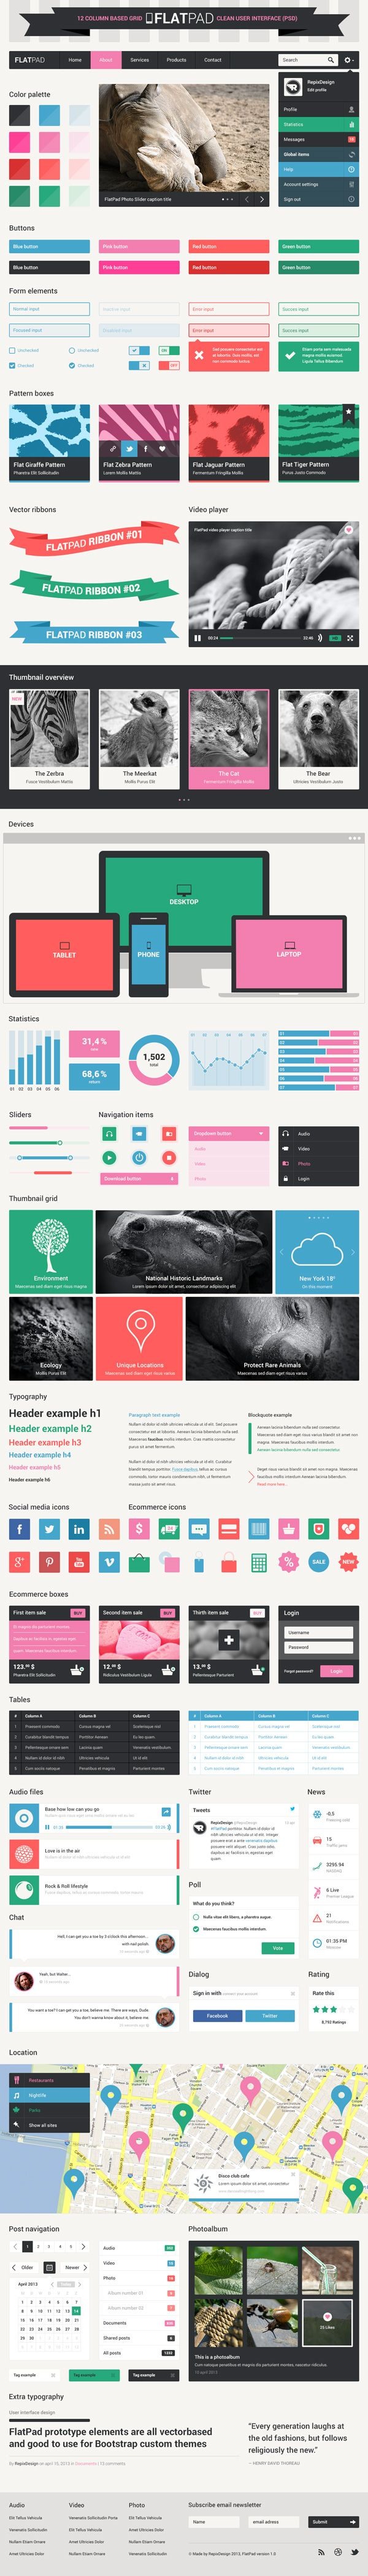 Repix is easily one of my favorite designers. Love his take on Flat UI for Boots…